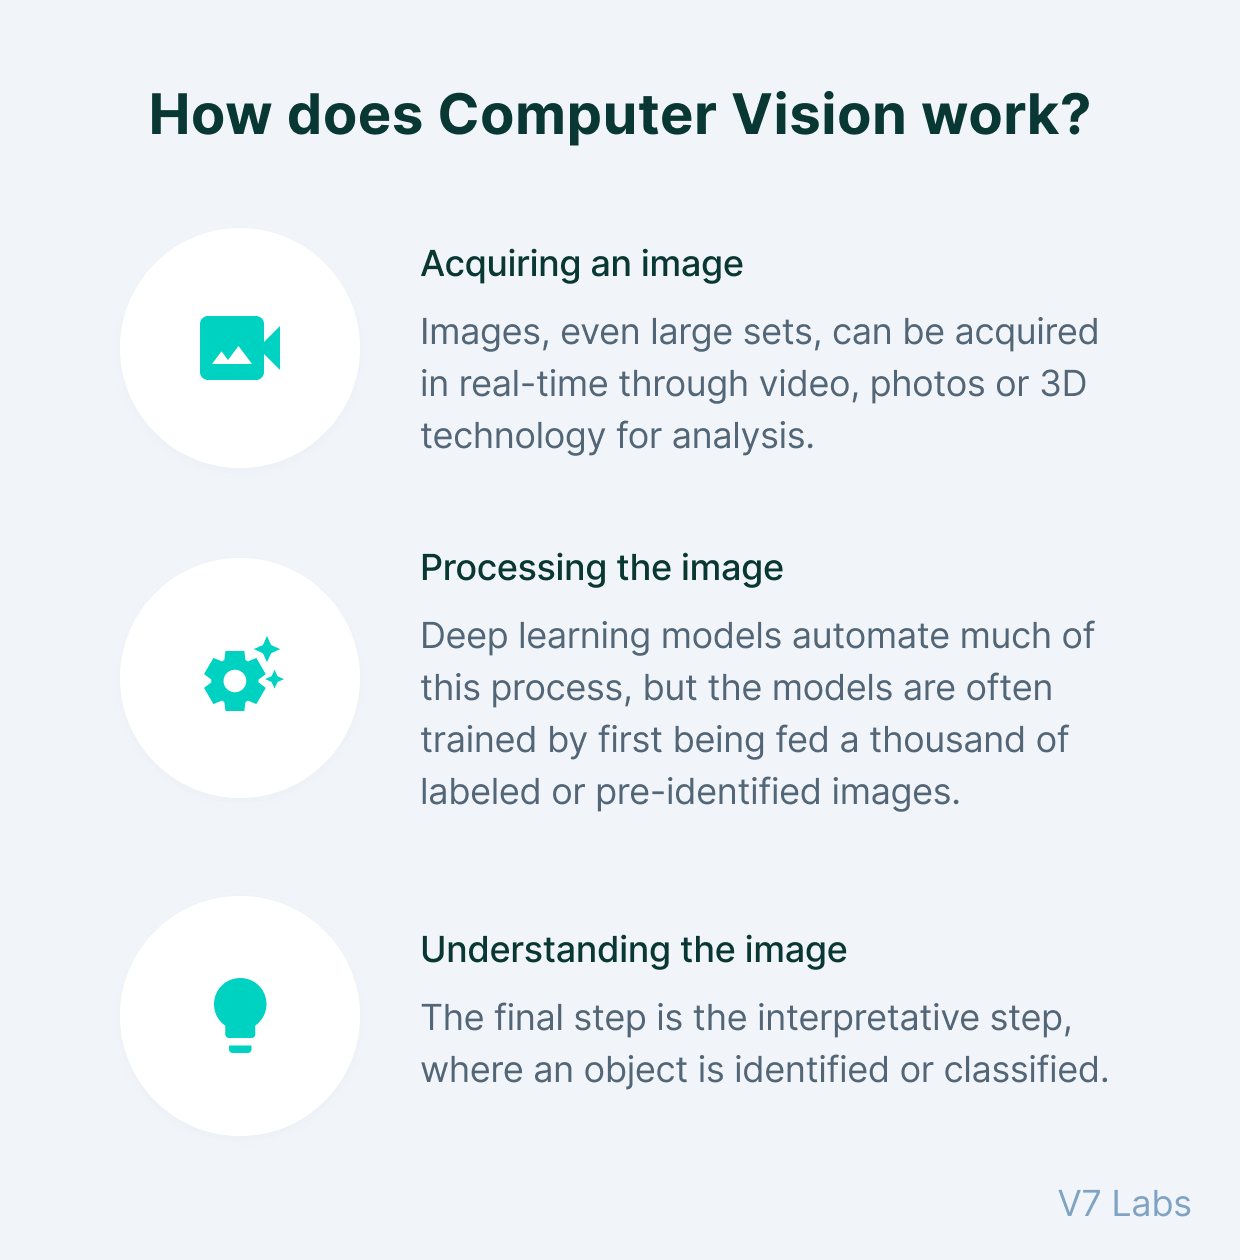 Computer vision works by acquiring, processing, and understanding the image or video data